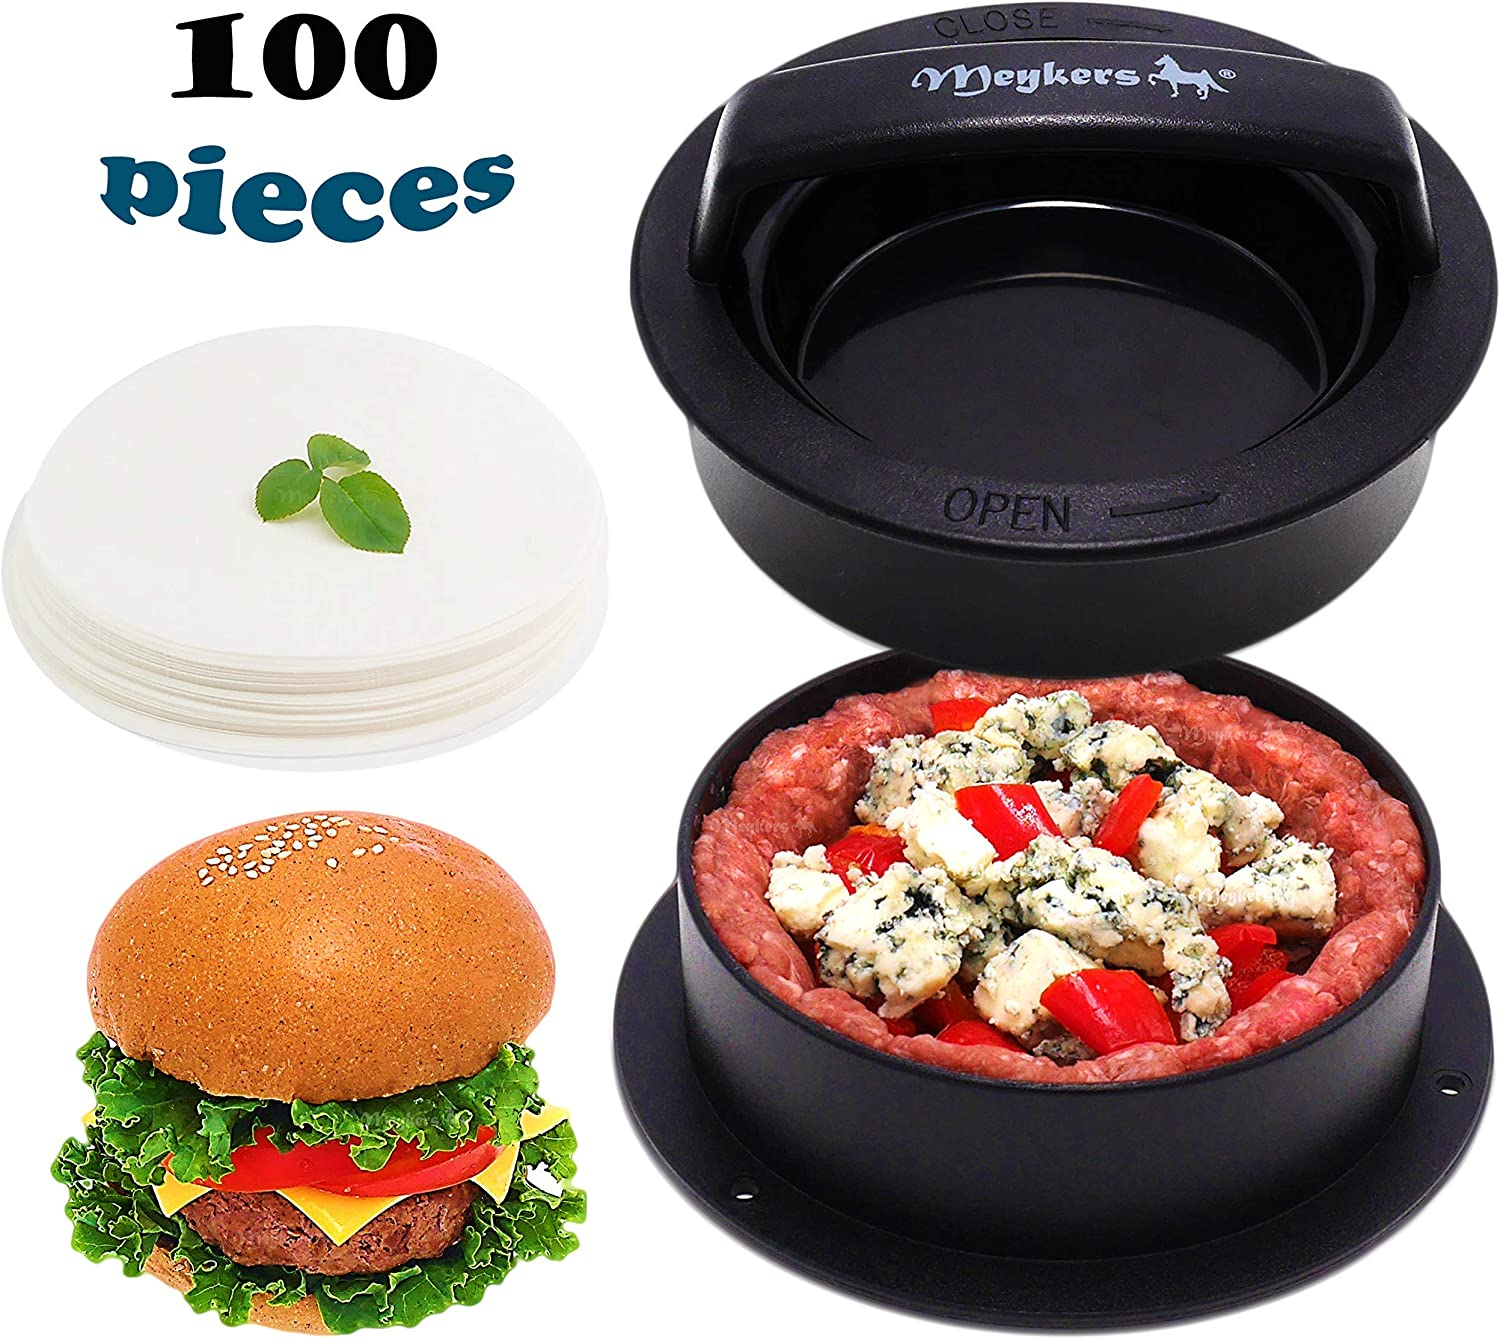 Meykers Burger Press Hamburger Press Patty Maker - with 100 Wax Papers Hamburger Patty Press Burger Mold Non-Stick 3-in-1 for Stuffed Cheeseburger Slider Burger Stuffer Beef Cheese Halal Vegan Grill